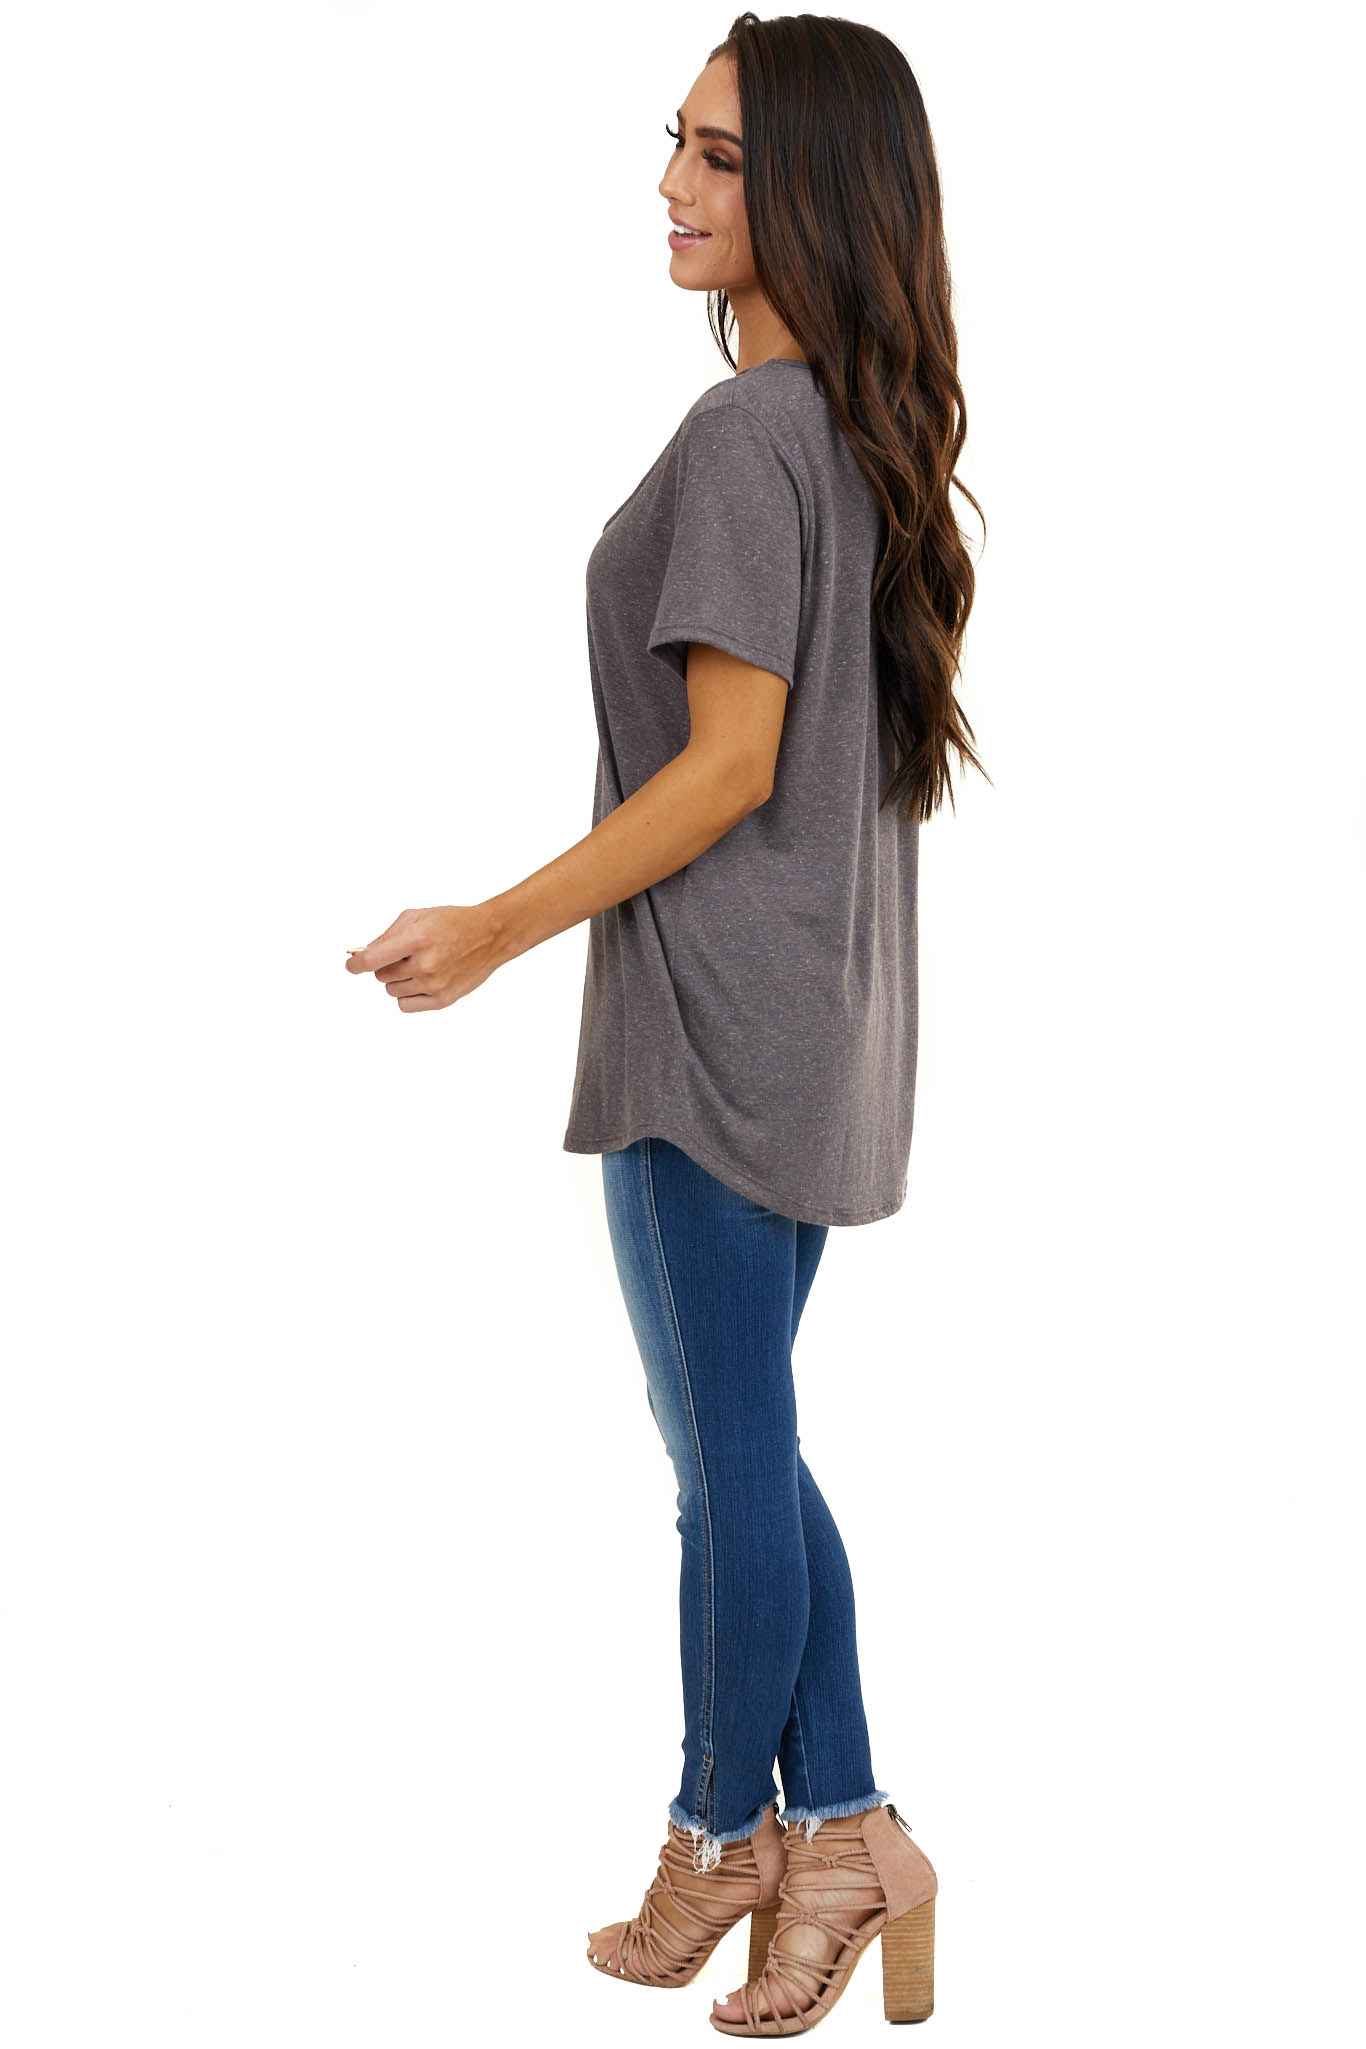 Heathered Stormy Grey Knit Top with Caged Neckline Detail